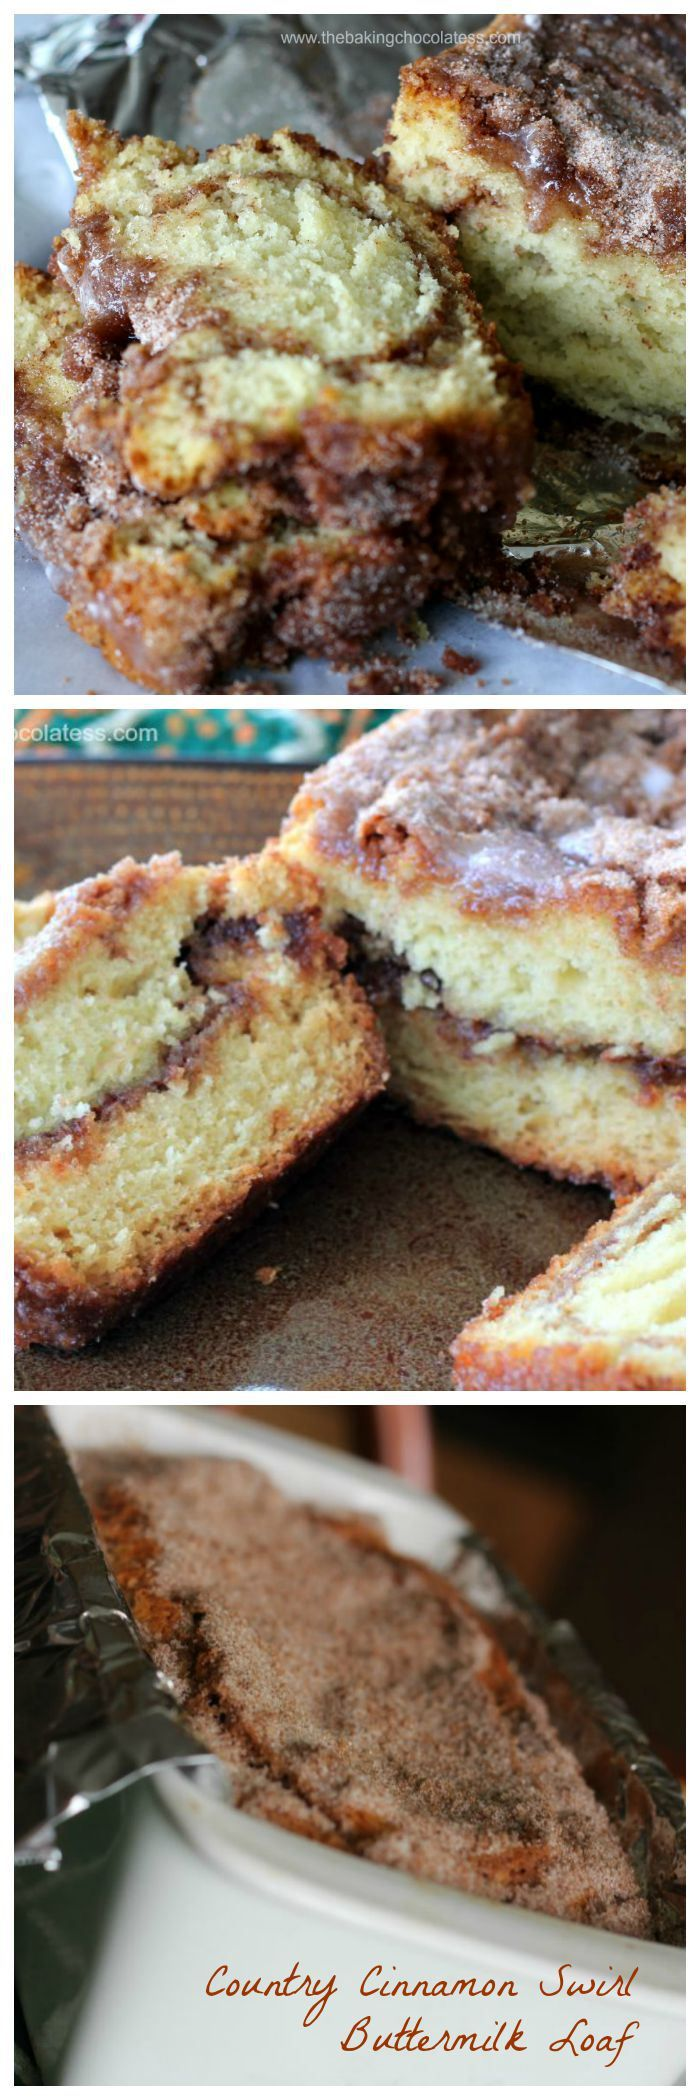 Country Cinnamon Swirl Buttermilk Loaf – The Baking ChocolaTess